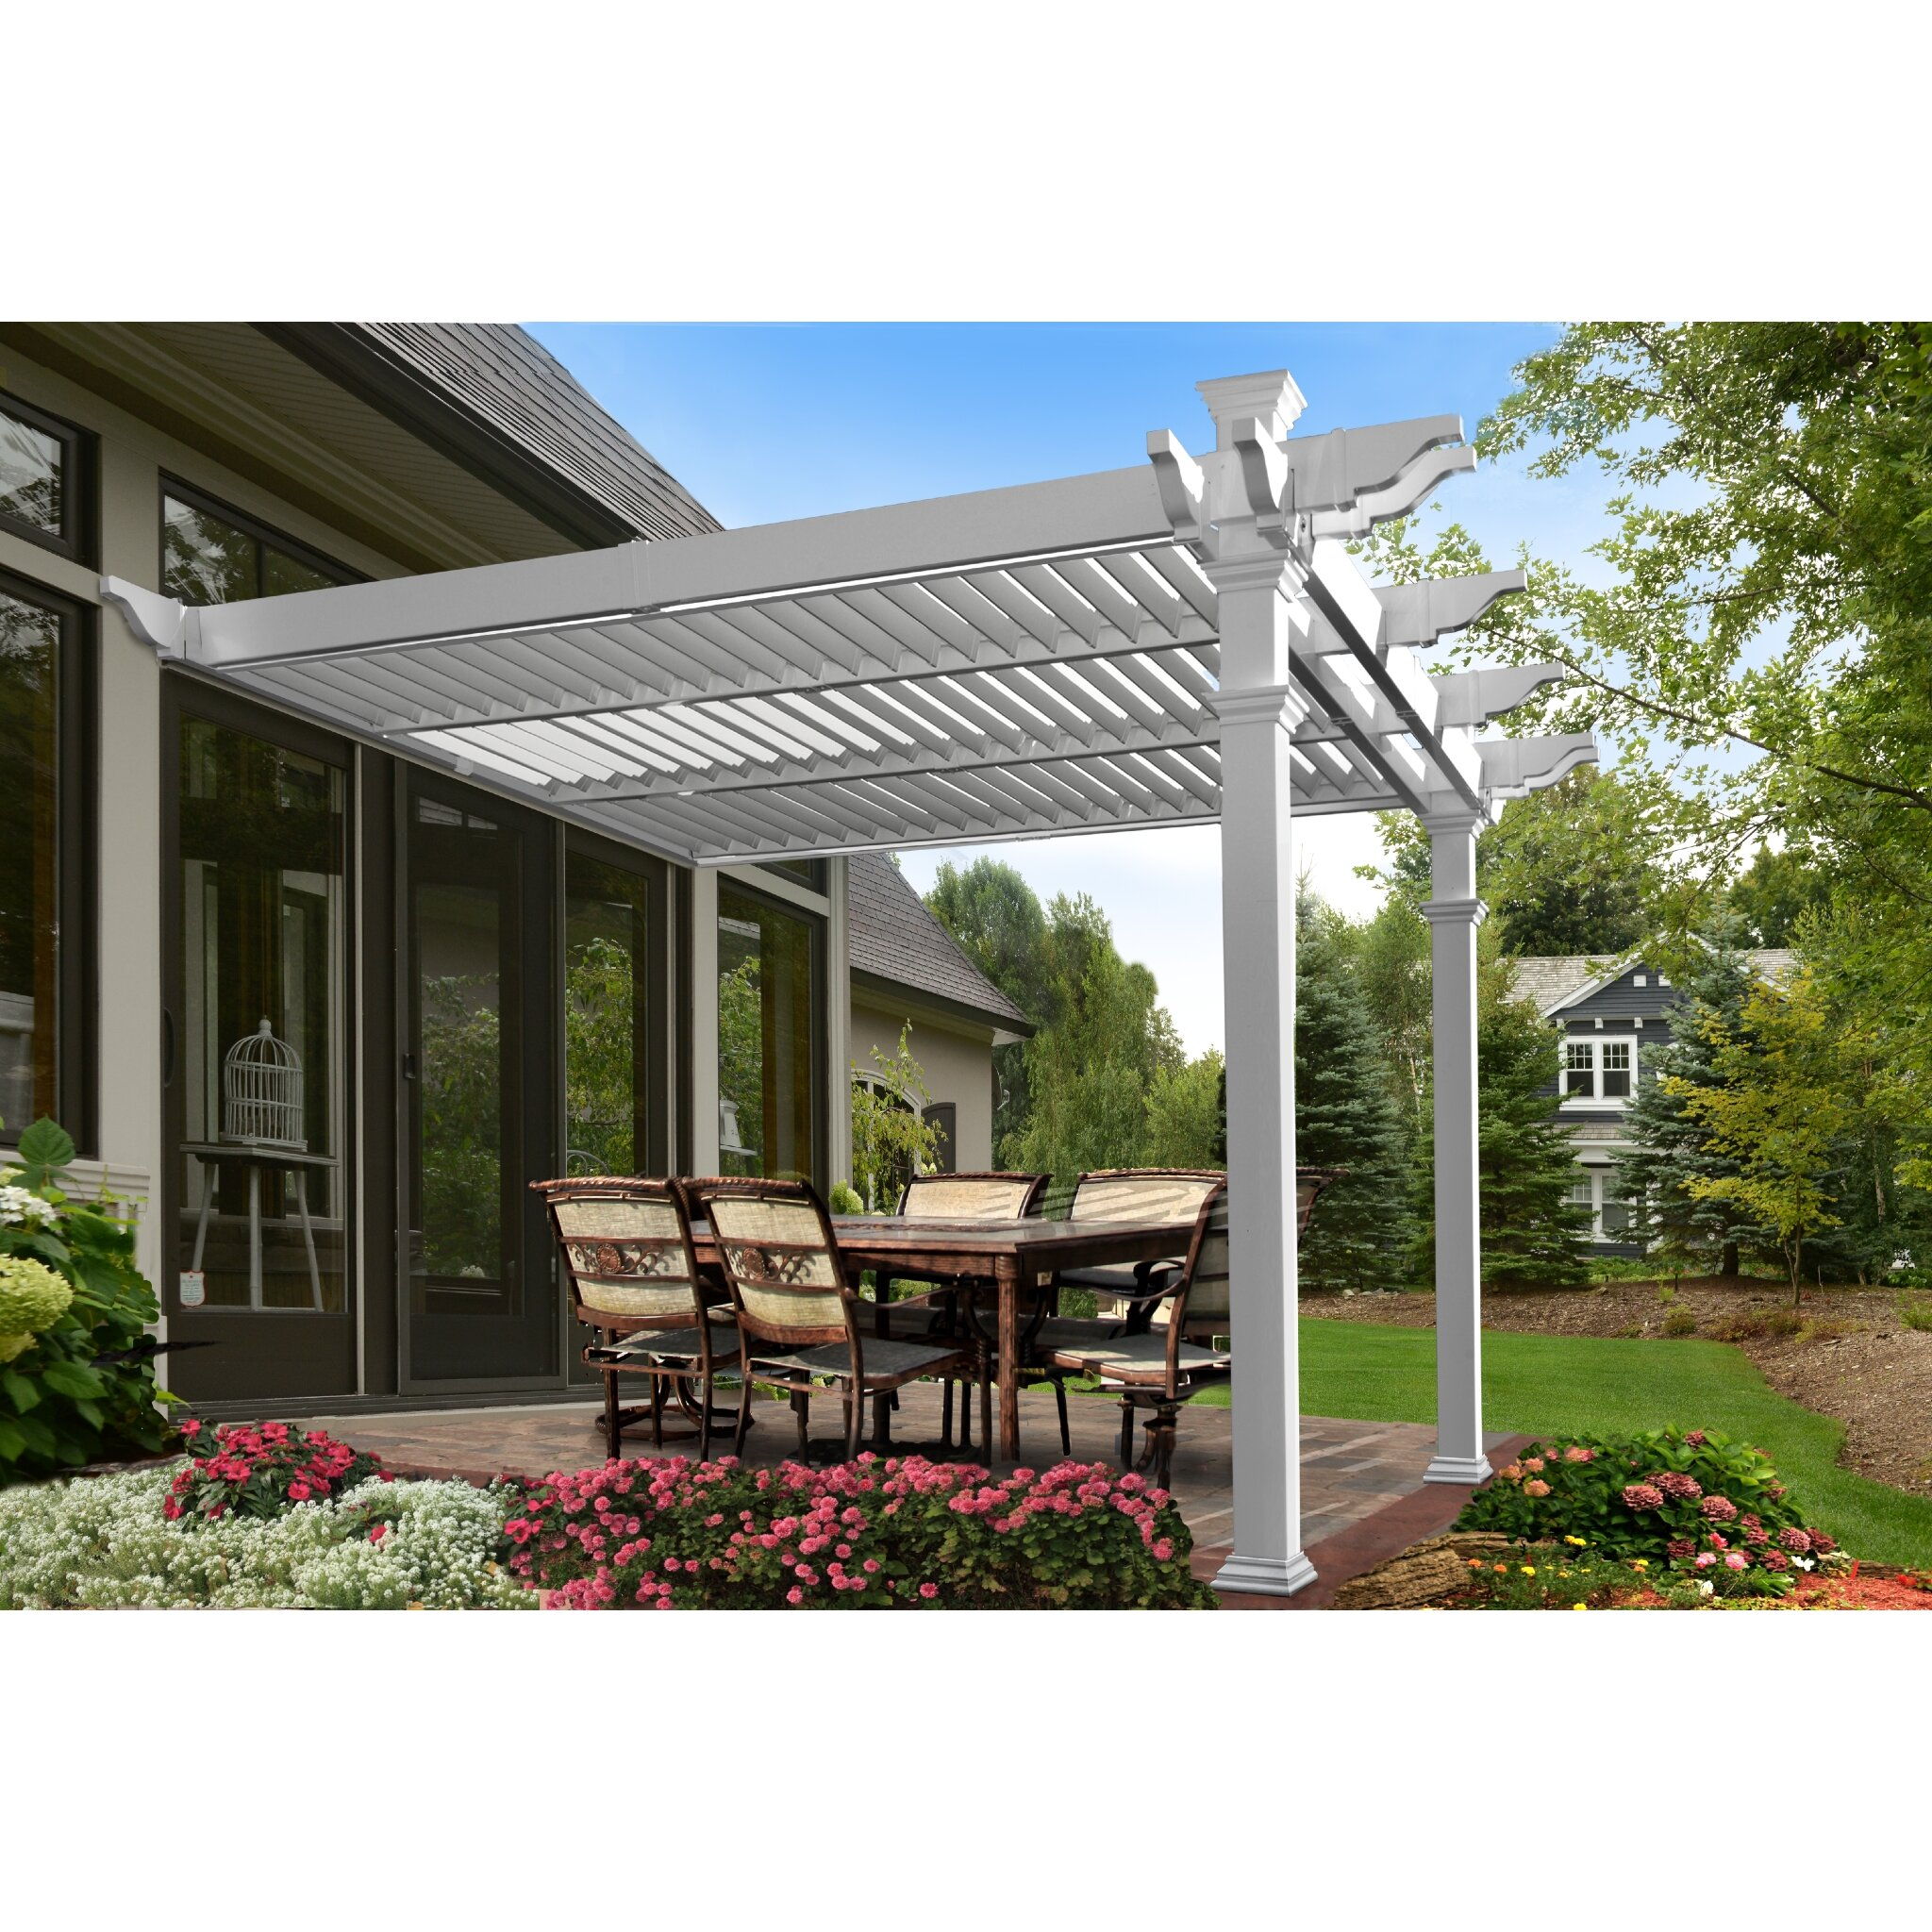 Elysium Attached Louvered 8 5 Ft H X 12 Ft W X 12 Ft D